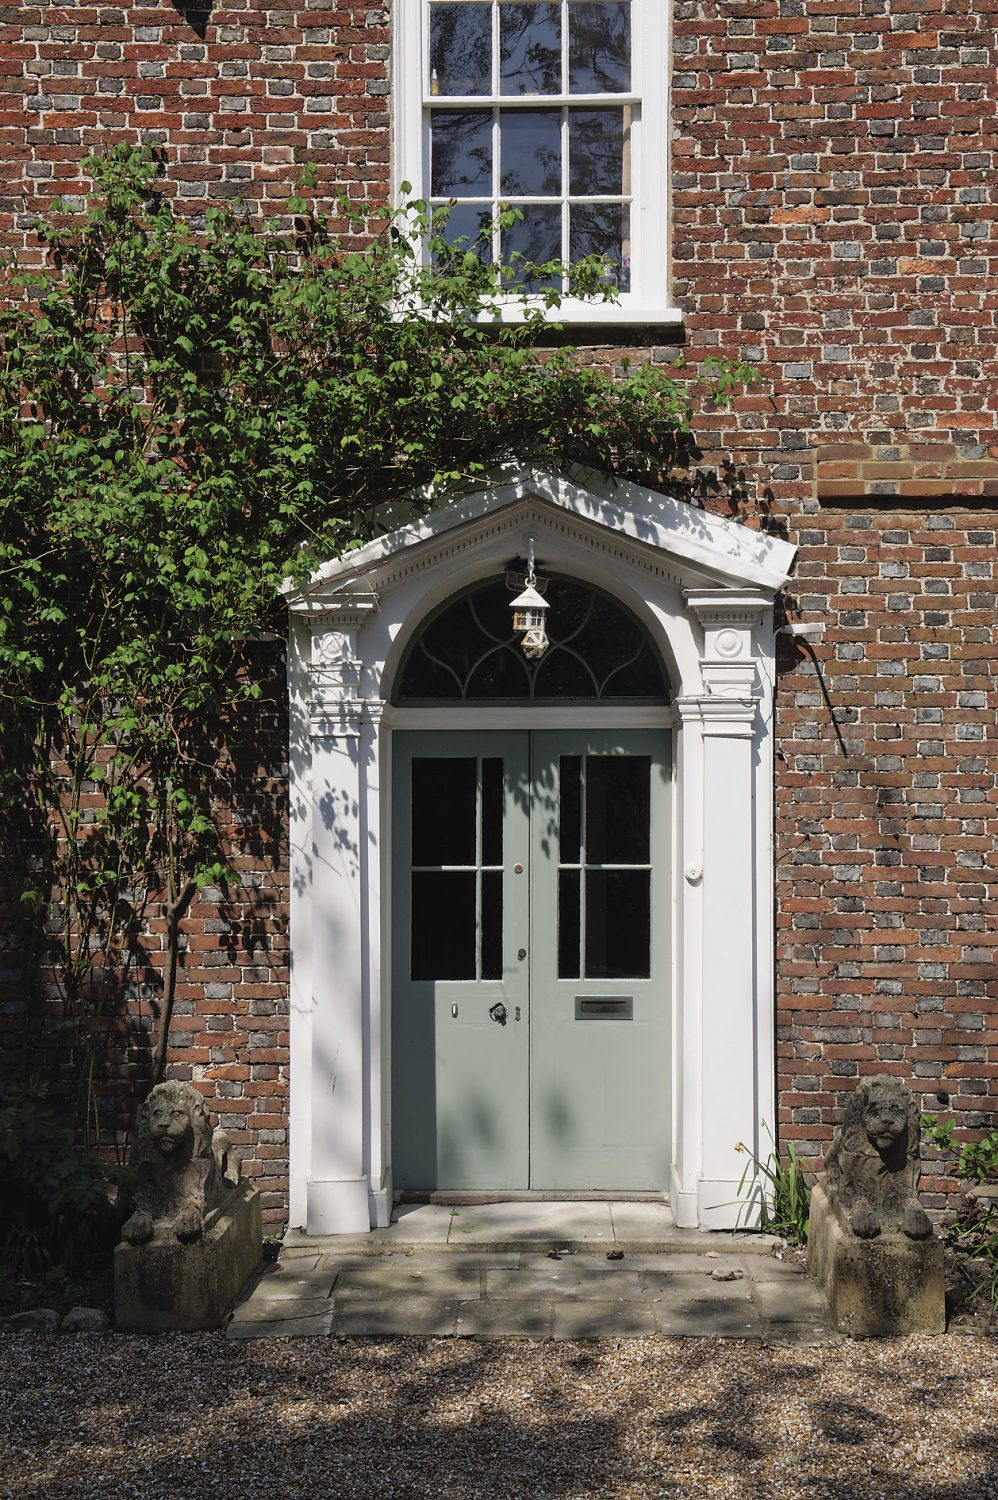 The front of the house is in the solid, sober style of 'farmer' George III. The beauty of its sash windows and the door with its simple fanlight above lies almost solely in the pleasing proportions of the architecture rather than any decoration